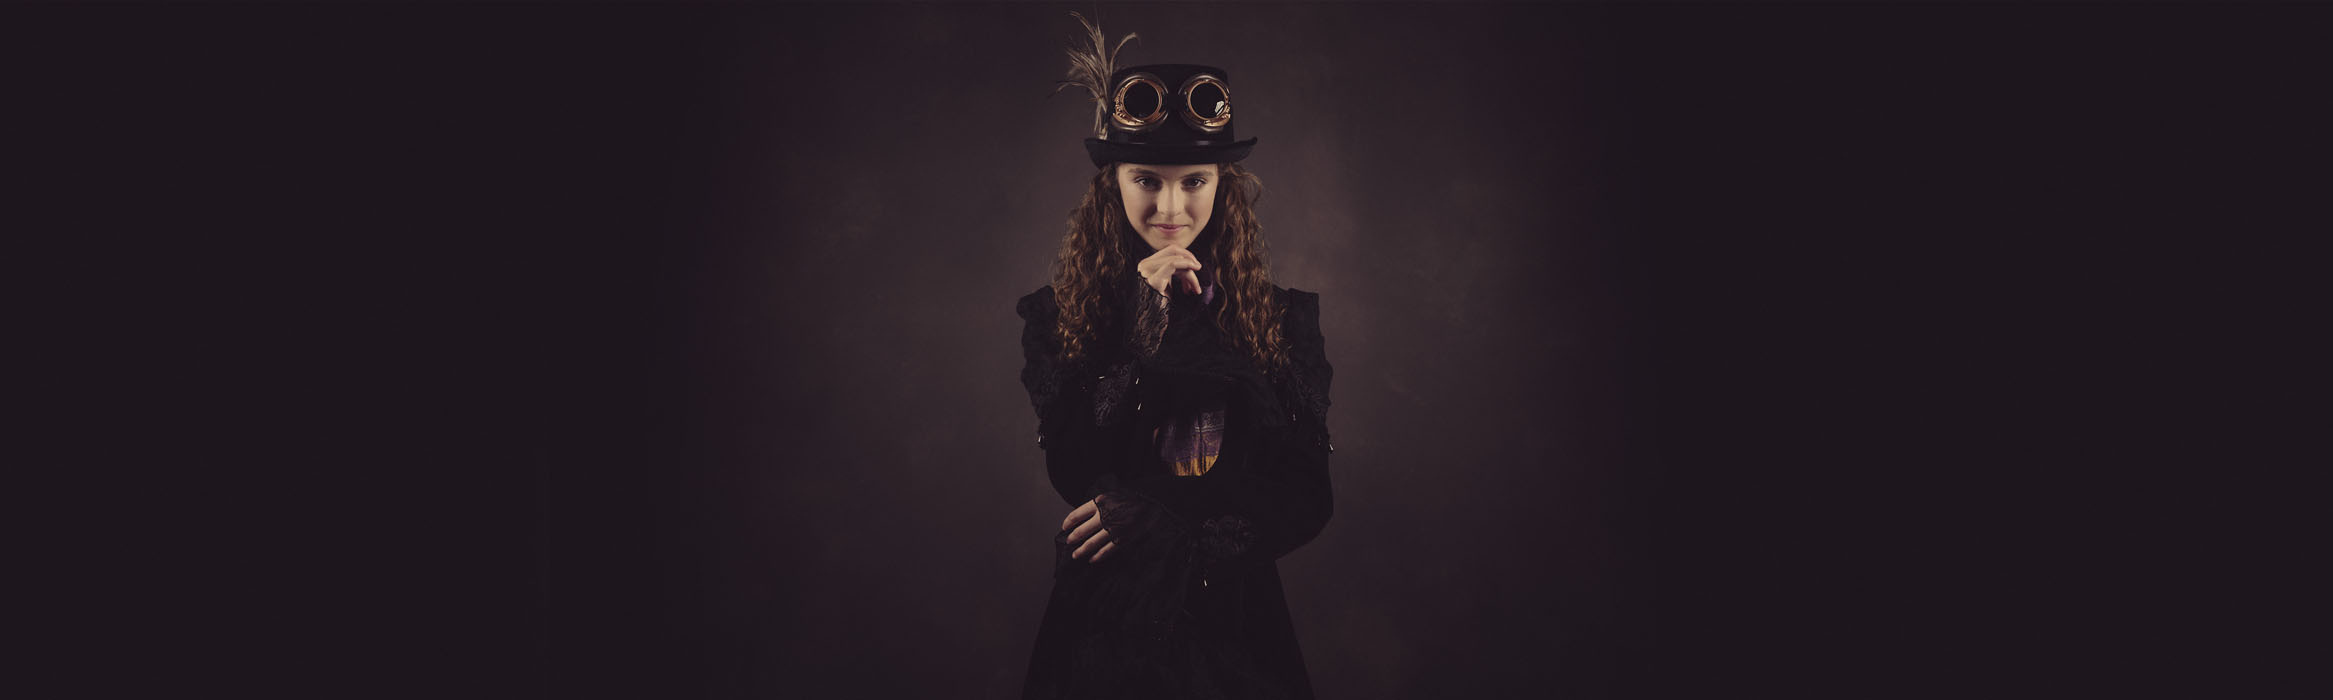 Child steampunk photography